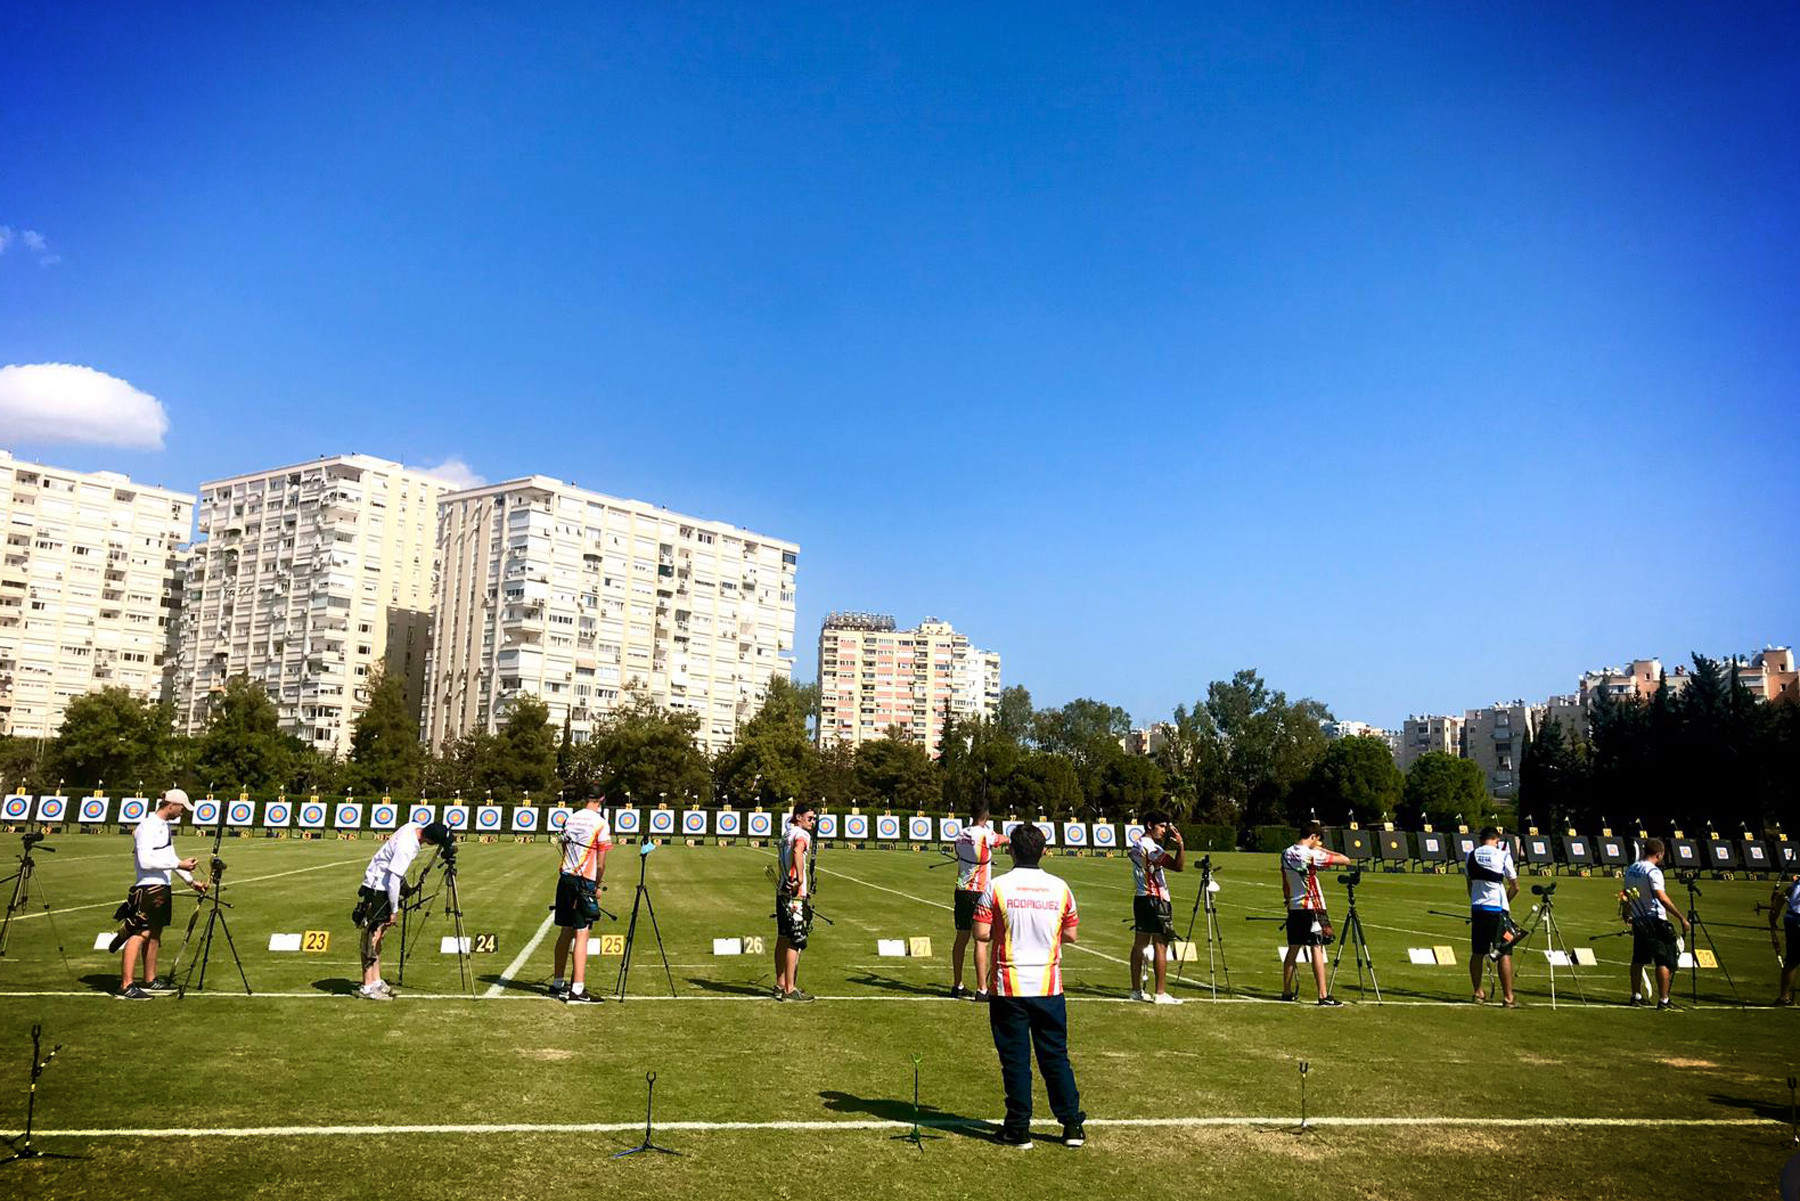 Antalya is currently hosting archery's first world ranking event since the start of coronavirus pandemic ©World Archery